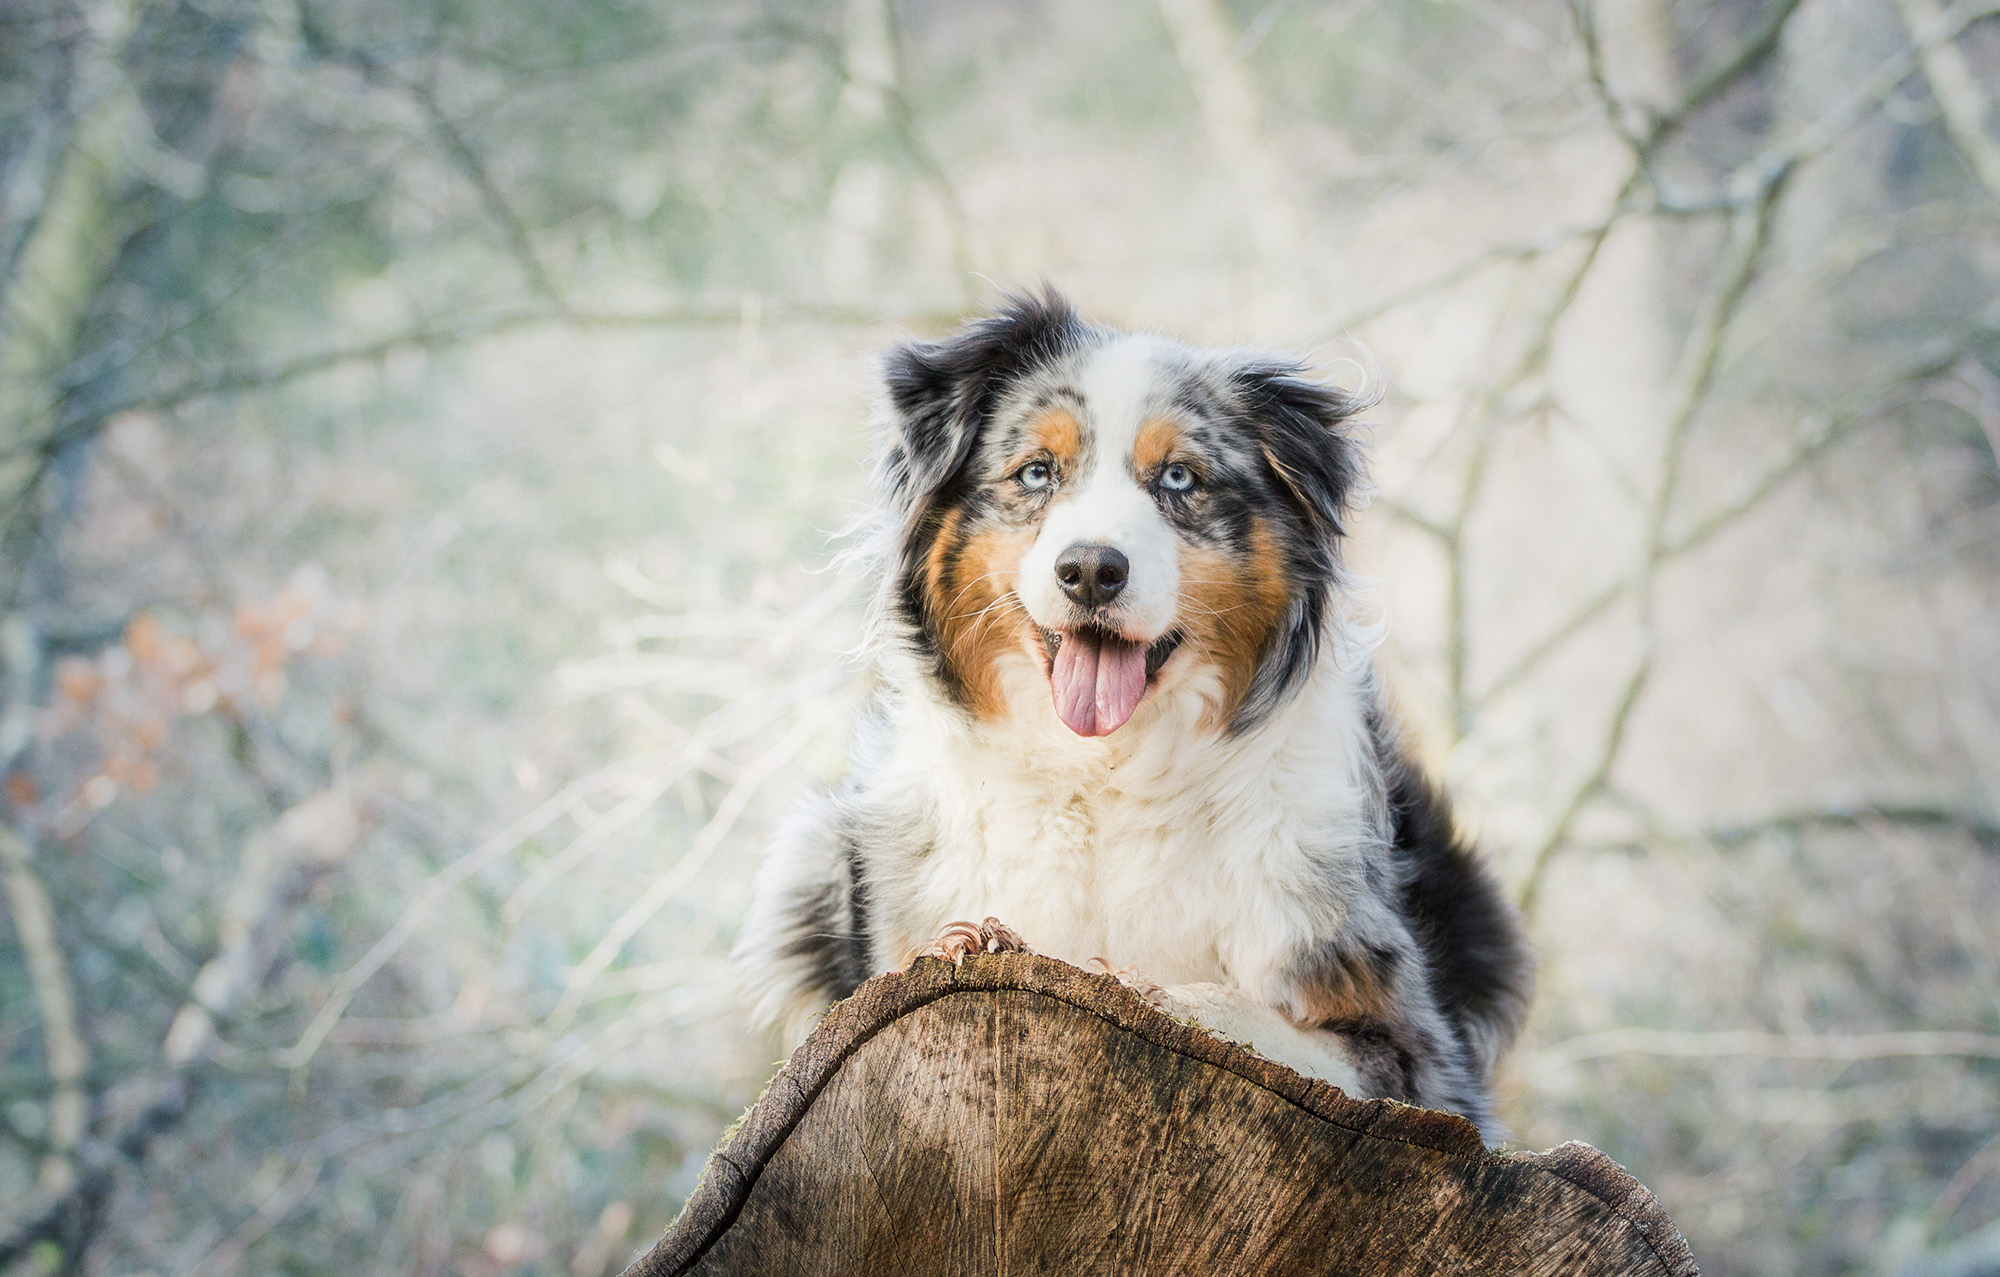 51577 download wallpaper Animals, Australian Shepherd, Aussie, Dog, Spotted, Spotty, Lies screensavers and pictures for free